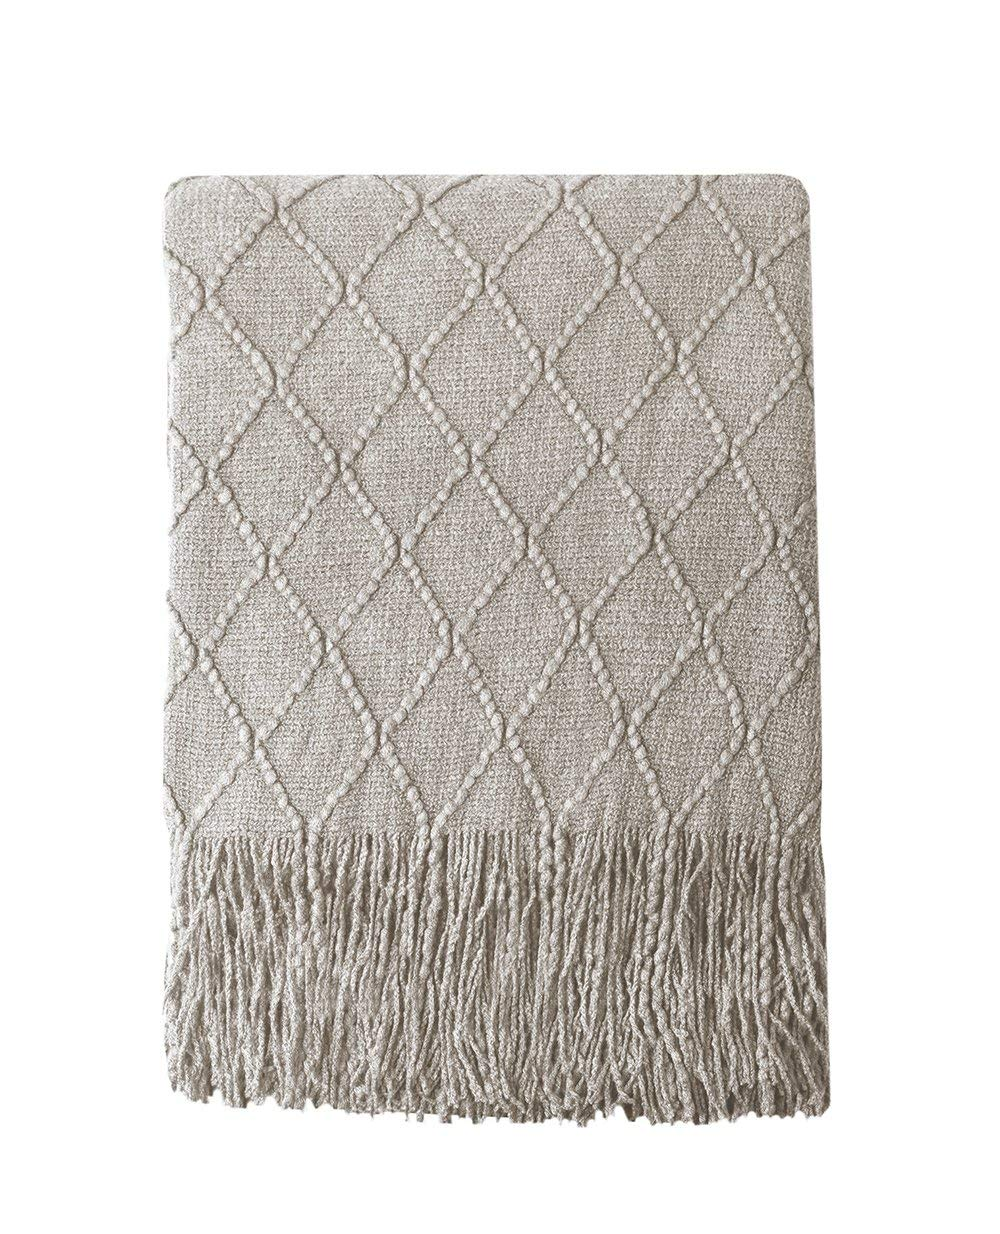 "BOURINA Textured Solid Soft Sofa Throw Couch Cover Knitted Decorative Blanket, 60"" x 80"",Beige"